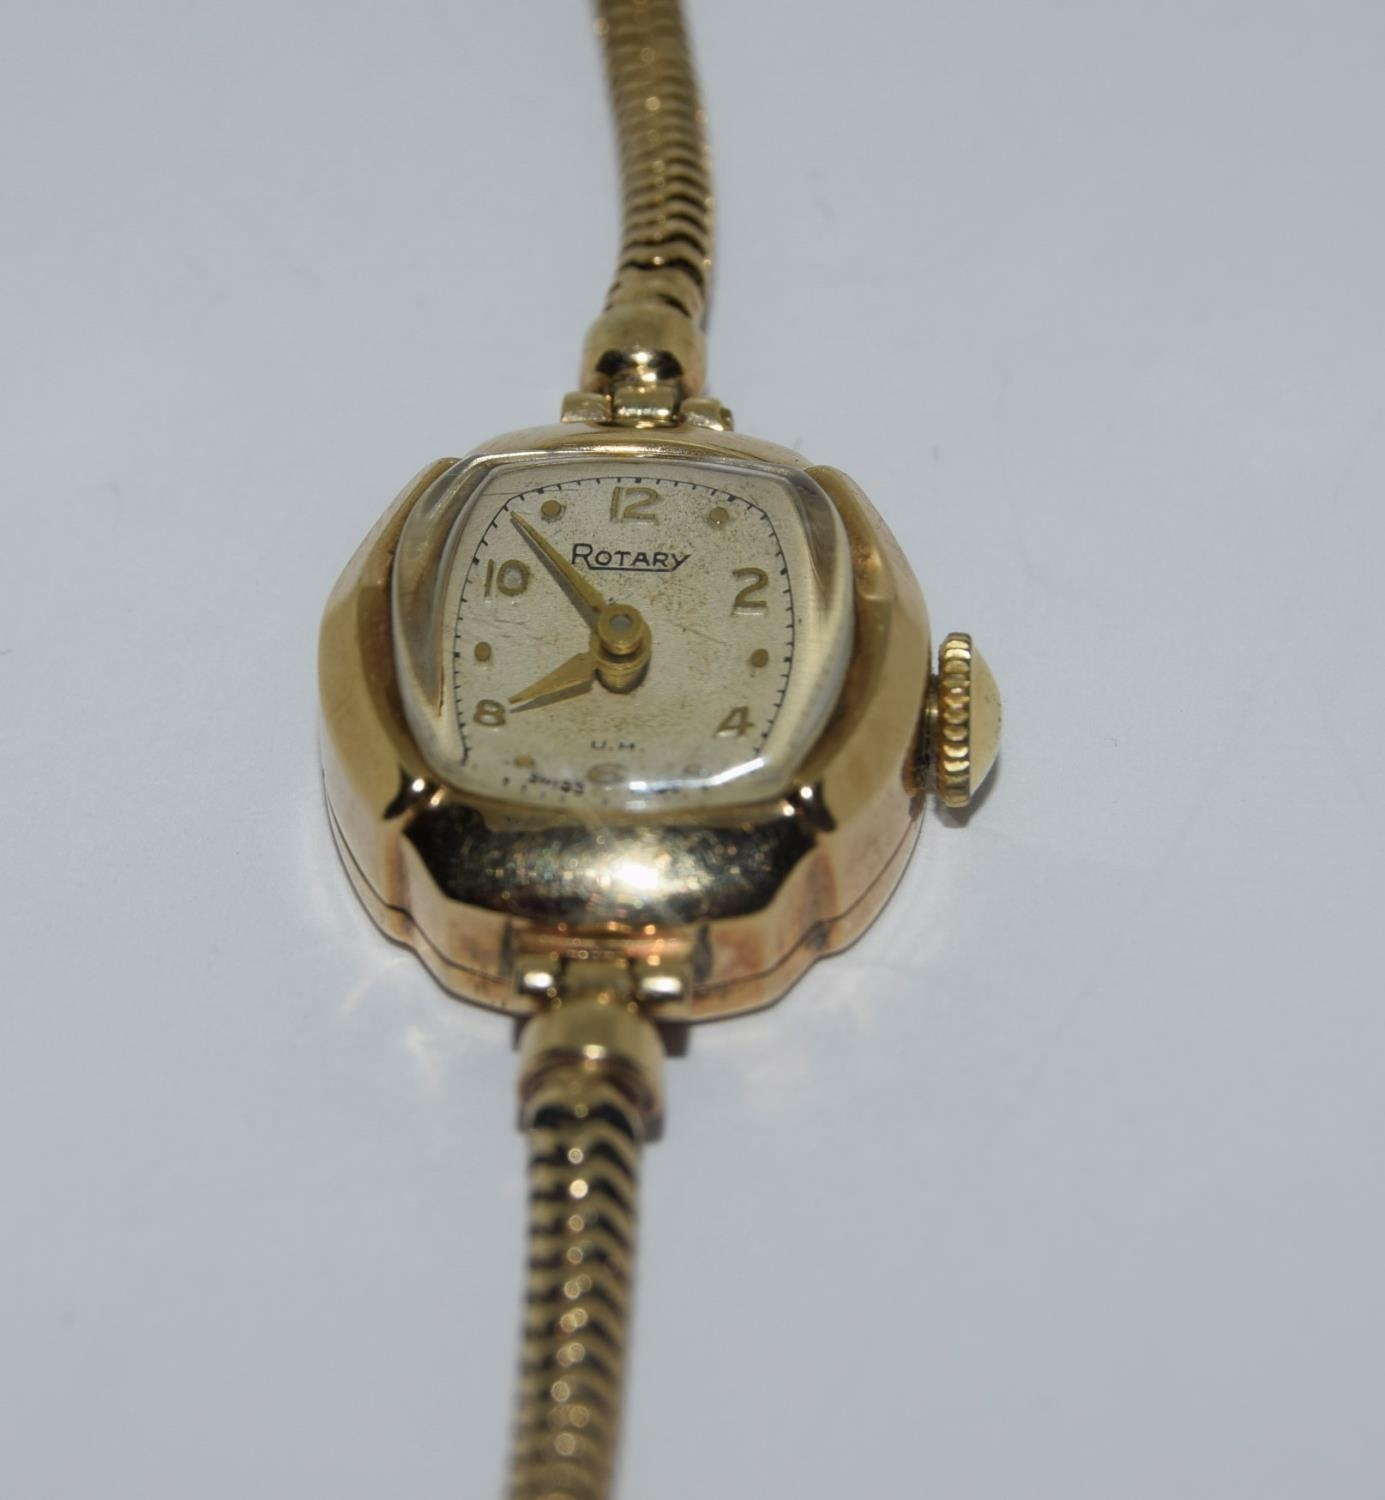 9ct gold ladies watch and strap together an agate watch fob - Image 4 of 9